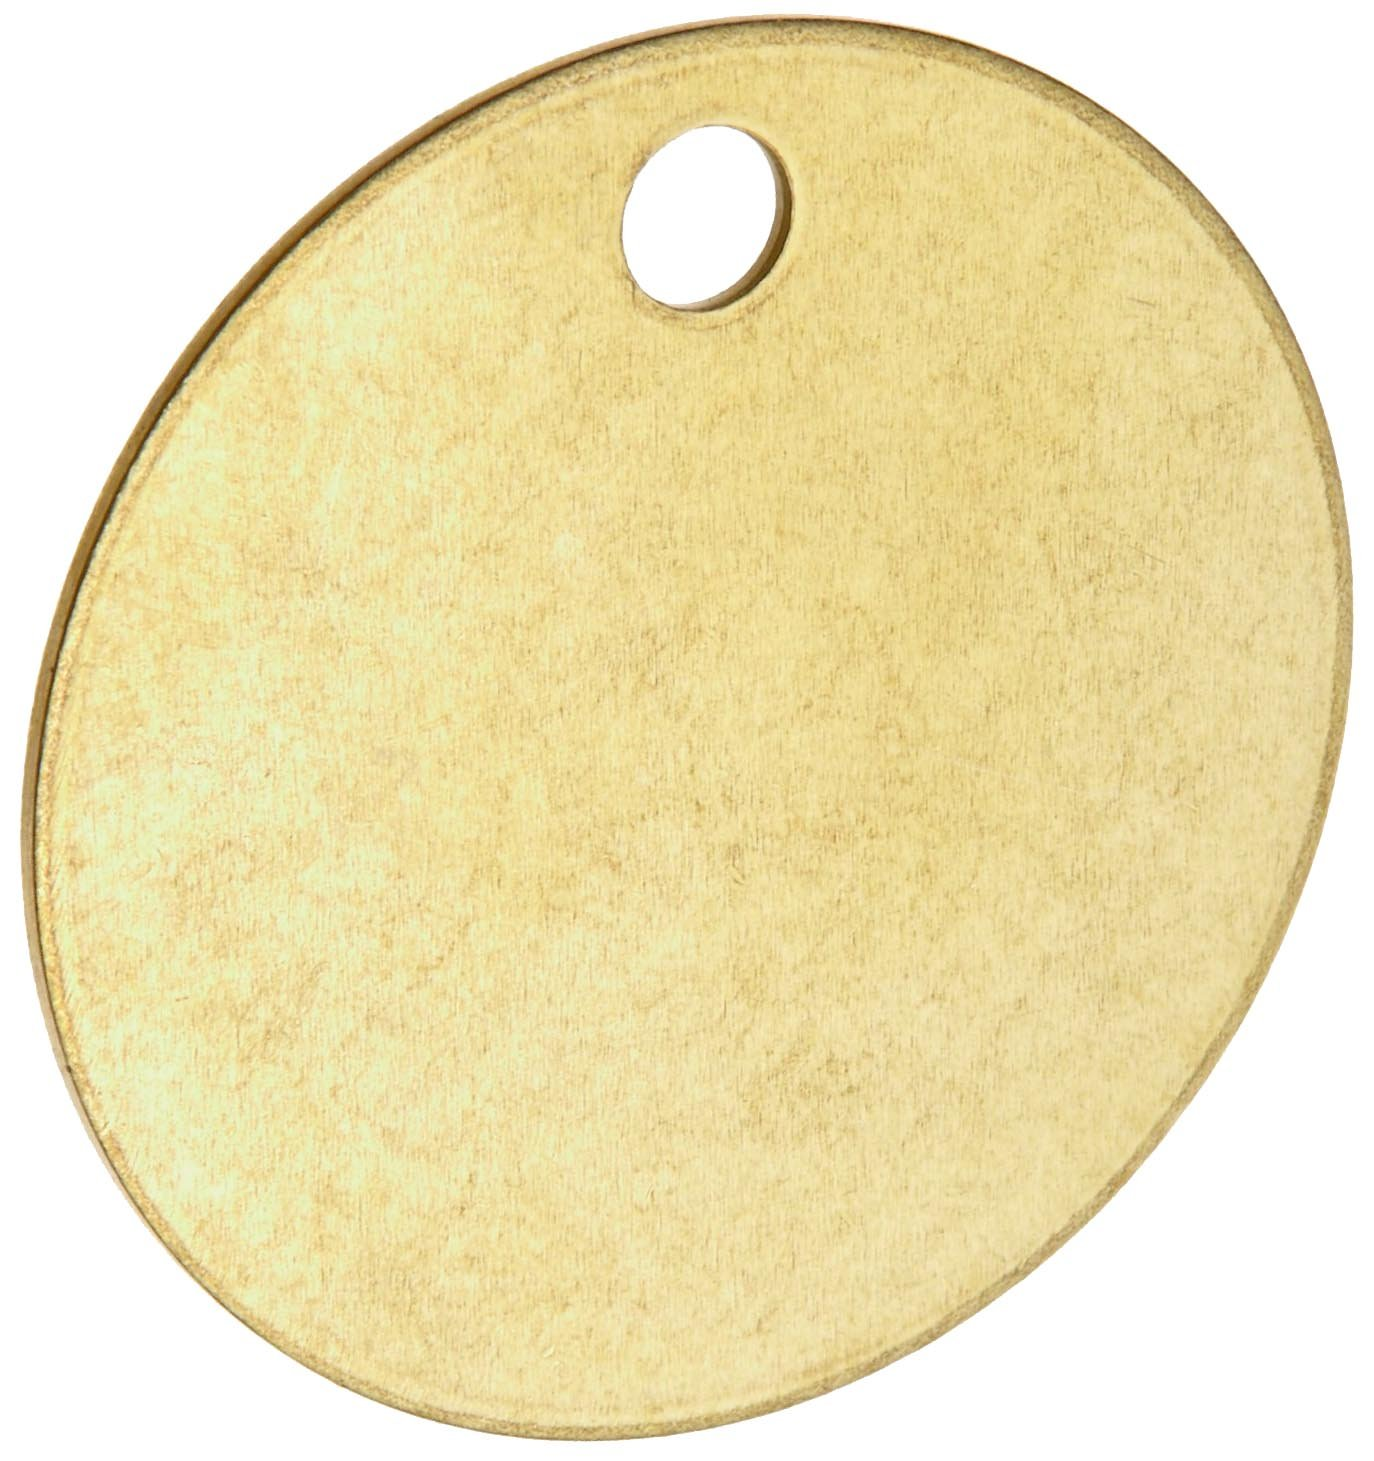 Brady Blank Valve Tags - Round Brass Tags, 1-1/2'' Diameter, B-907 (Pack Of 25) - 23210